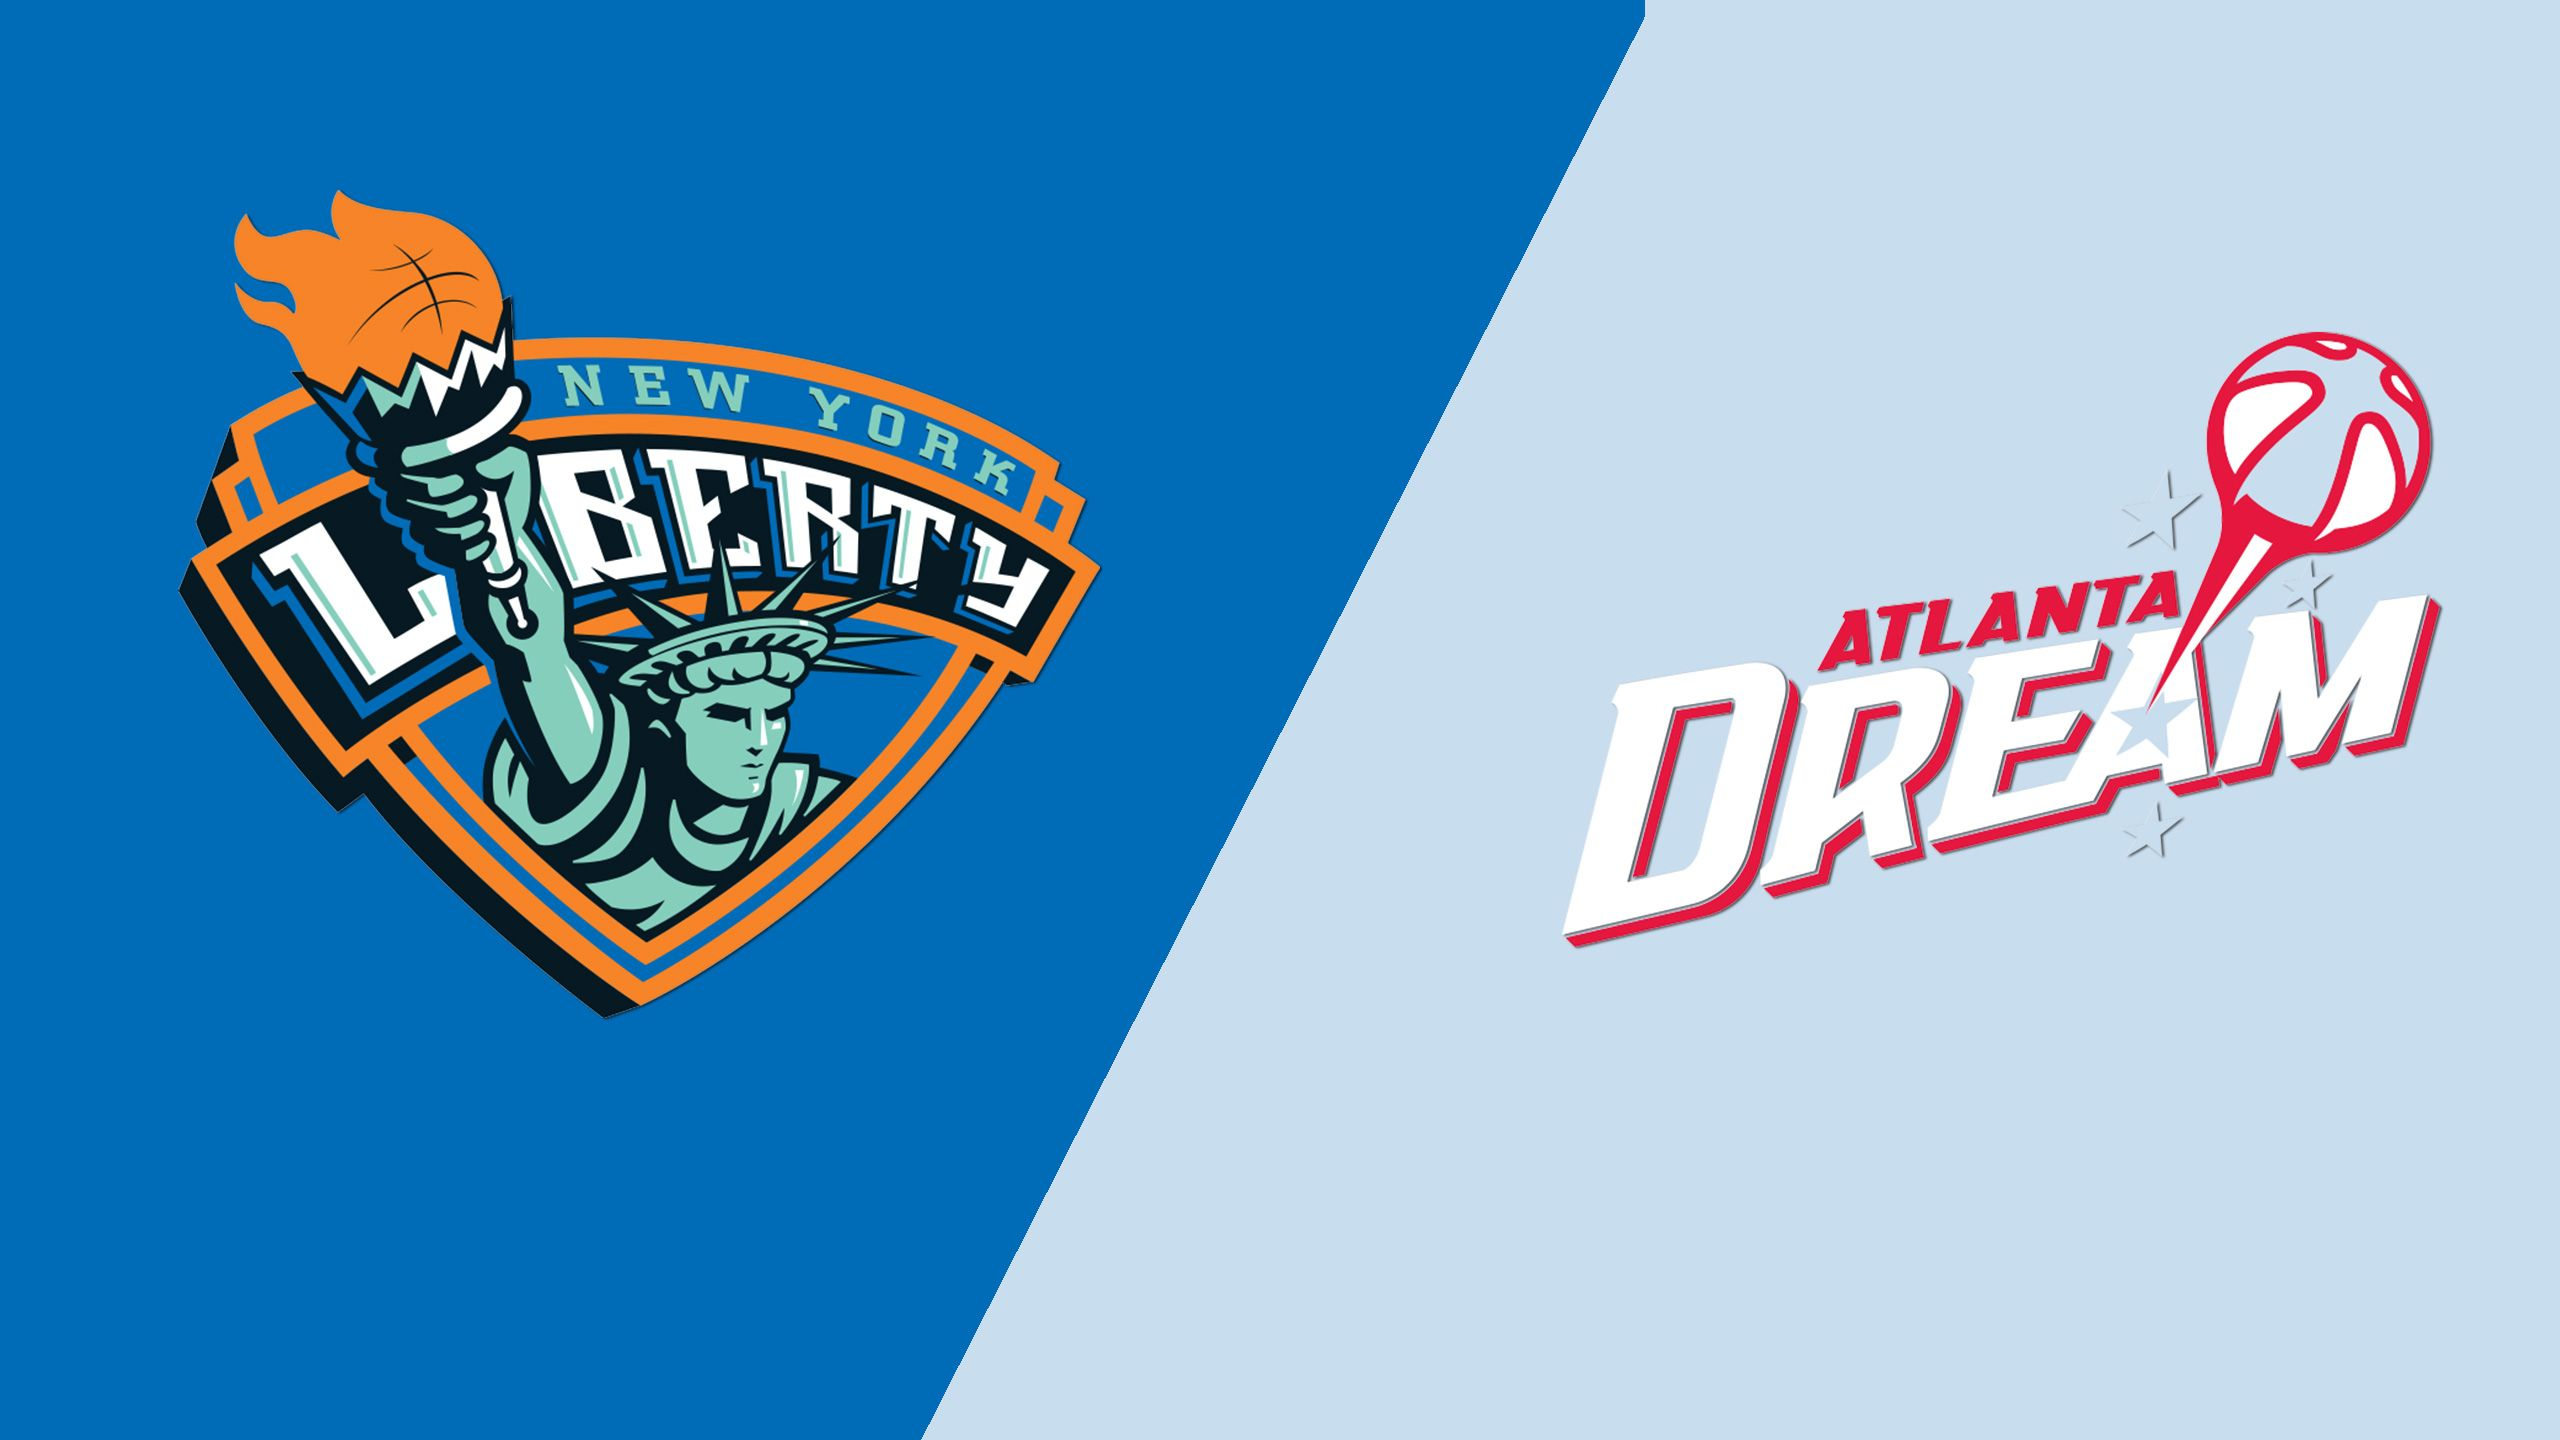 New York Liberty vs. Atlanta Dream